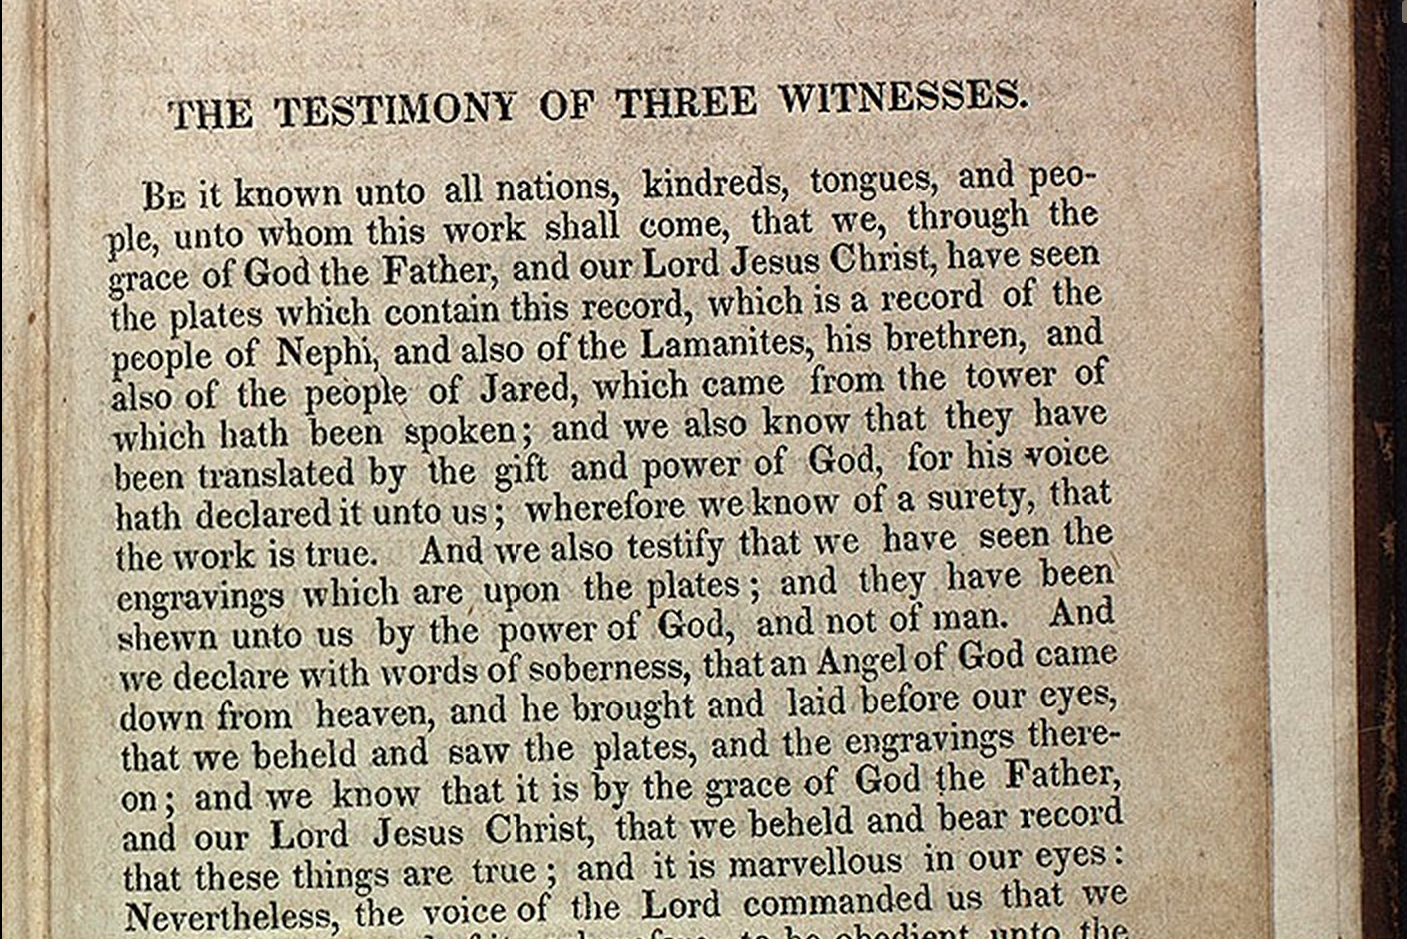 The Experience of the Three Witnesses